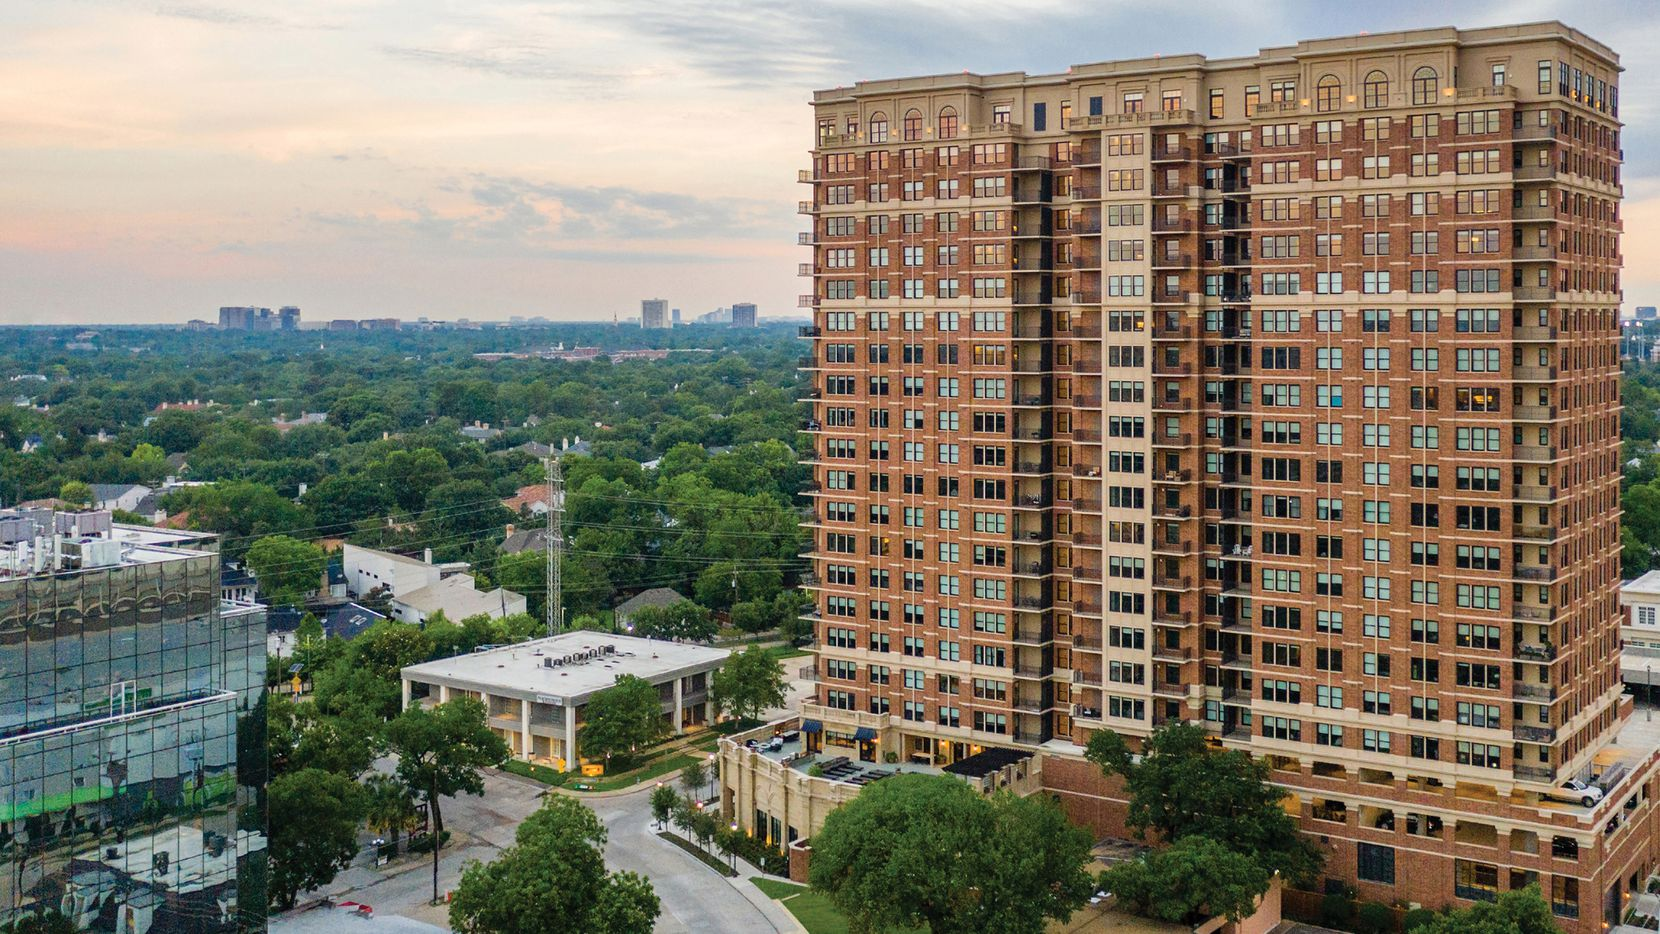 A few one-, two- and three-bedroom apartments are available to lease at The McKenzie, between Highland Park and the Knox-Henderson neighborhood.